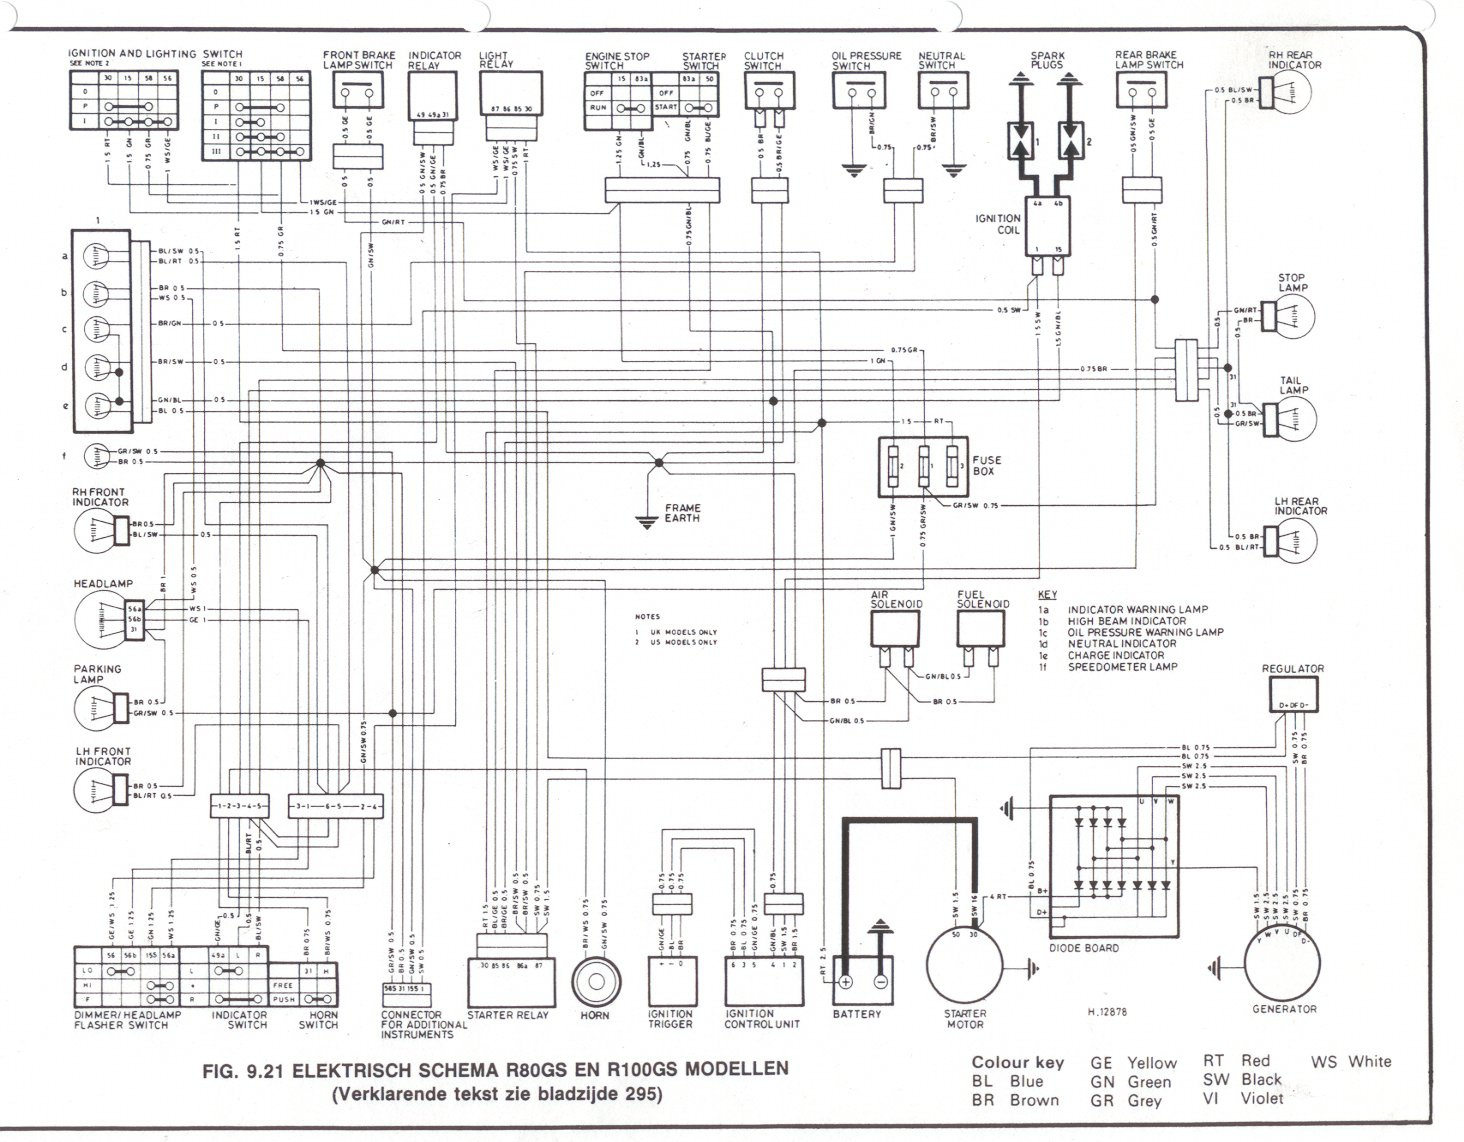 R80 100GS Schematic bmw r100 info thiel org za bmw r100 wiring diagram at gsmx.co